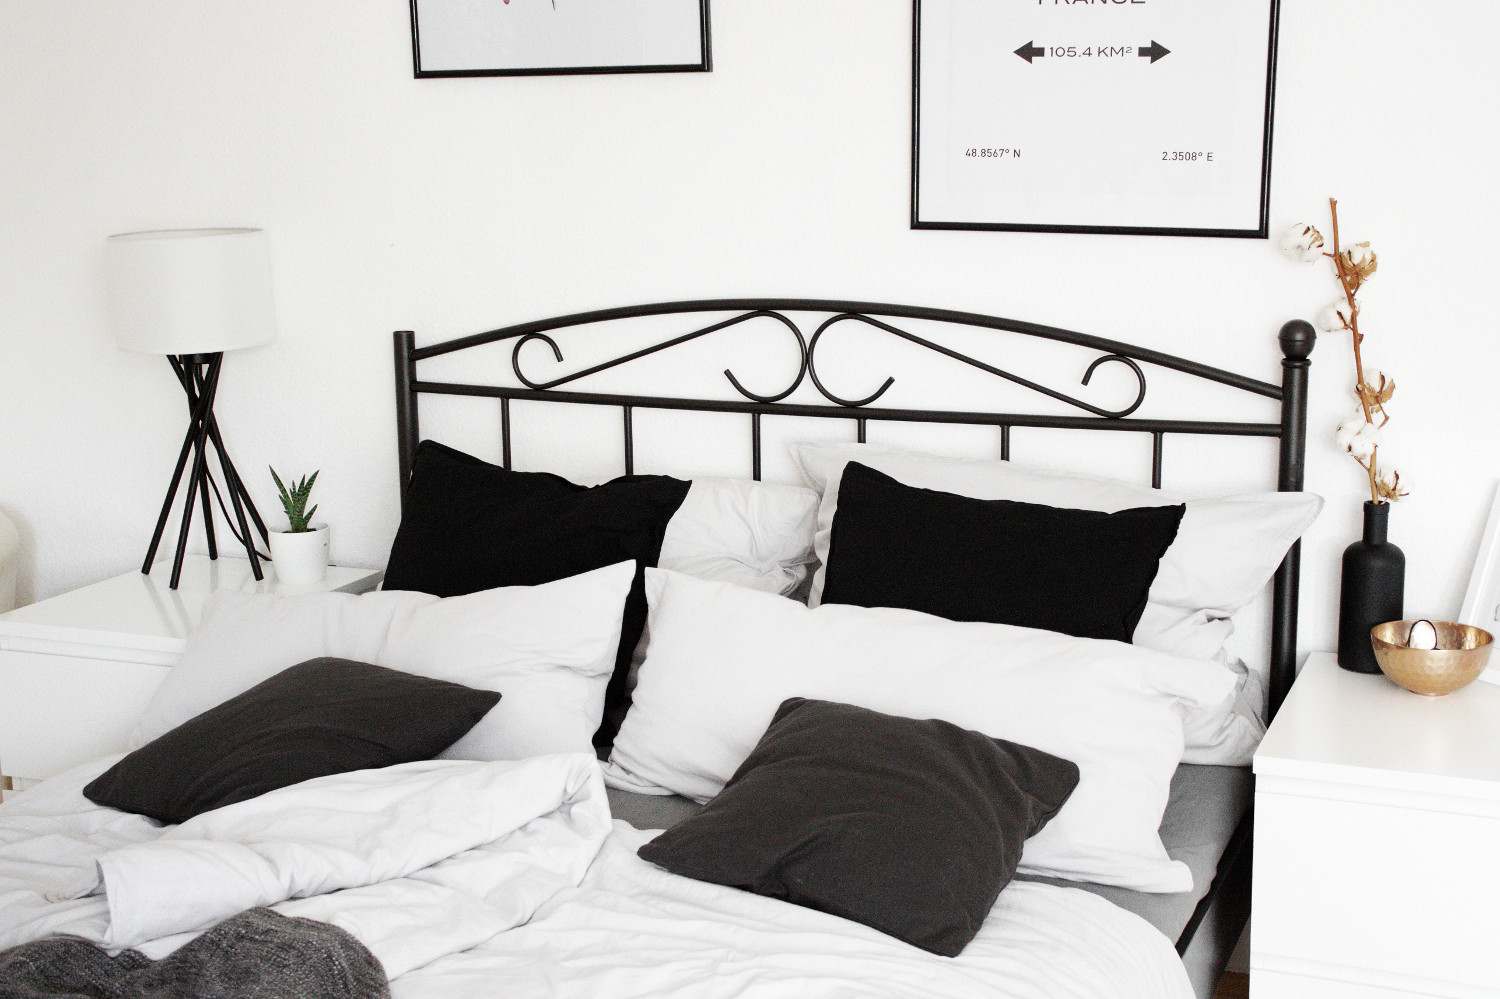 homestory schlafzimmer einrichtung mein bett. Black Bedroom Furniture Sets. Home Design Ideas